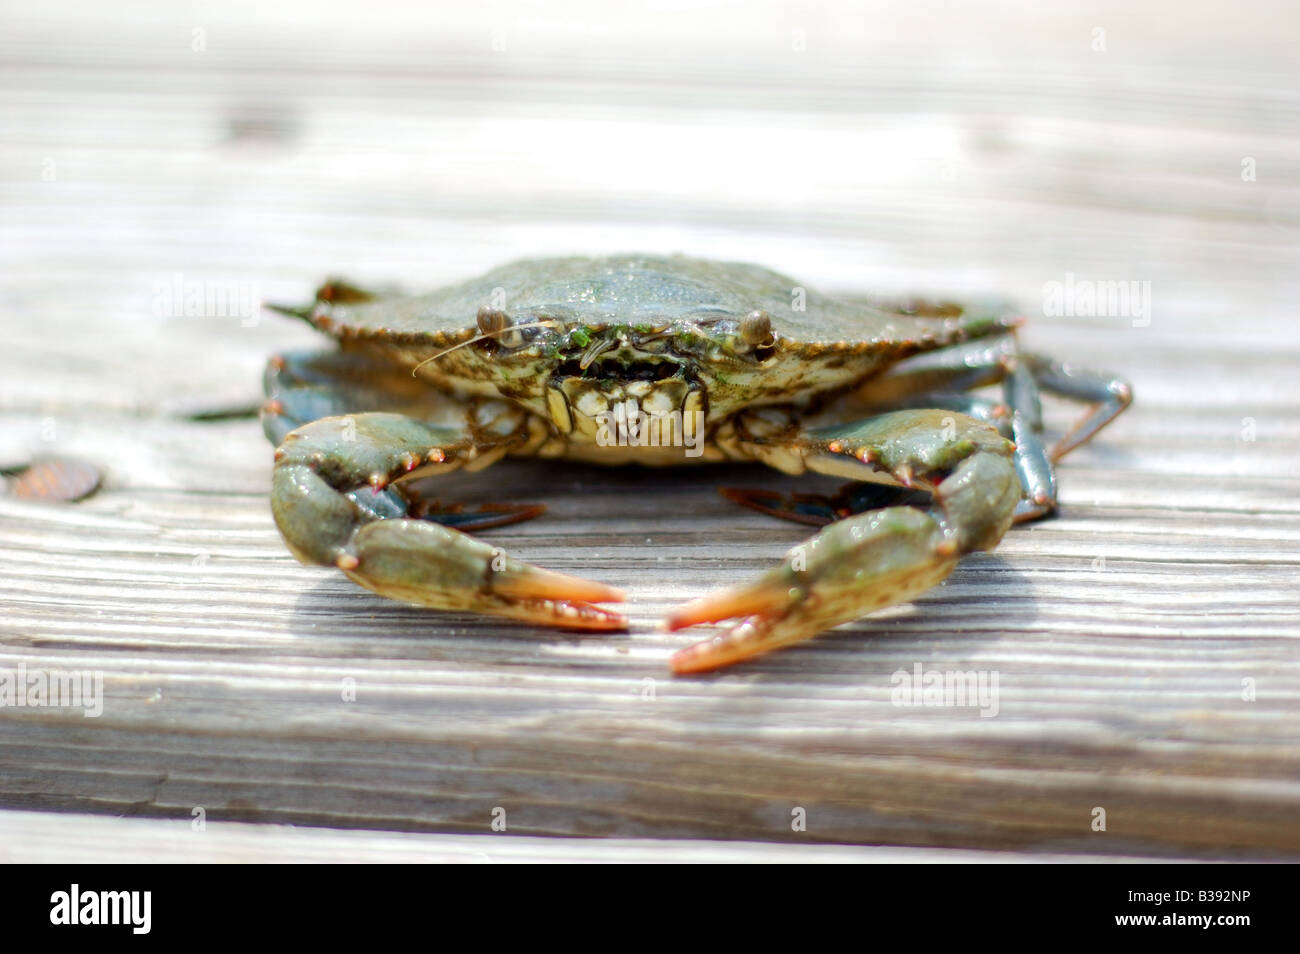 Front view closeup of a live crab freshly caught on a wooden pier at Chesapeake Bay, Maryland - Stock Image